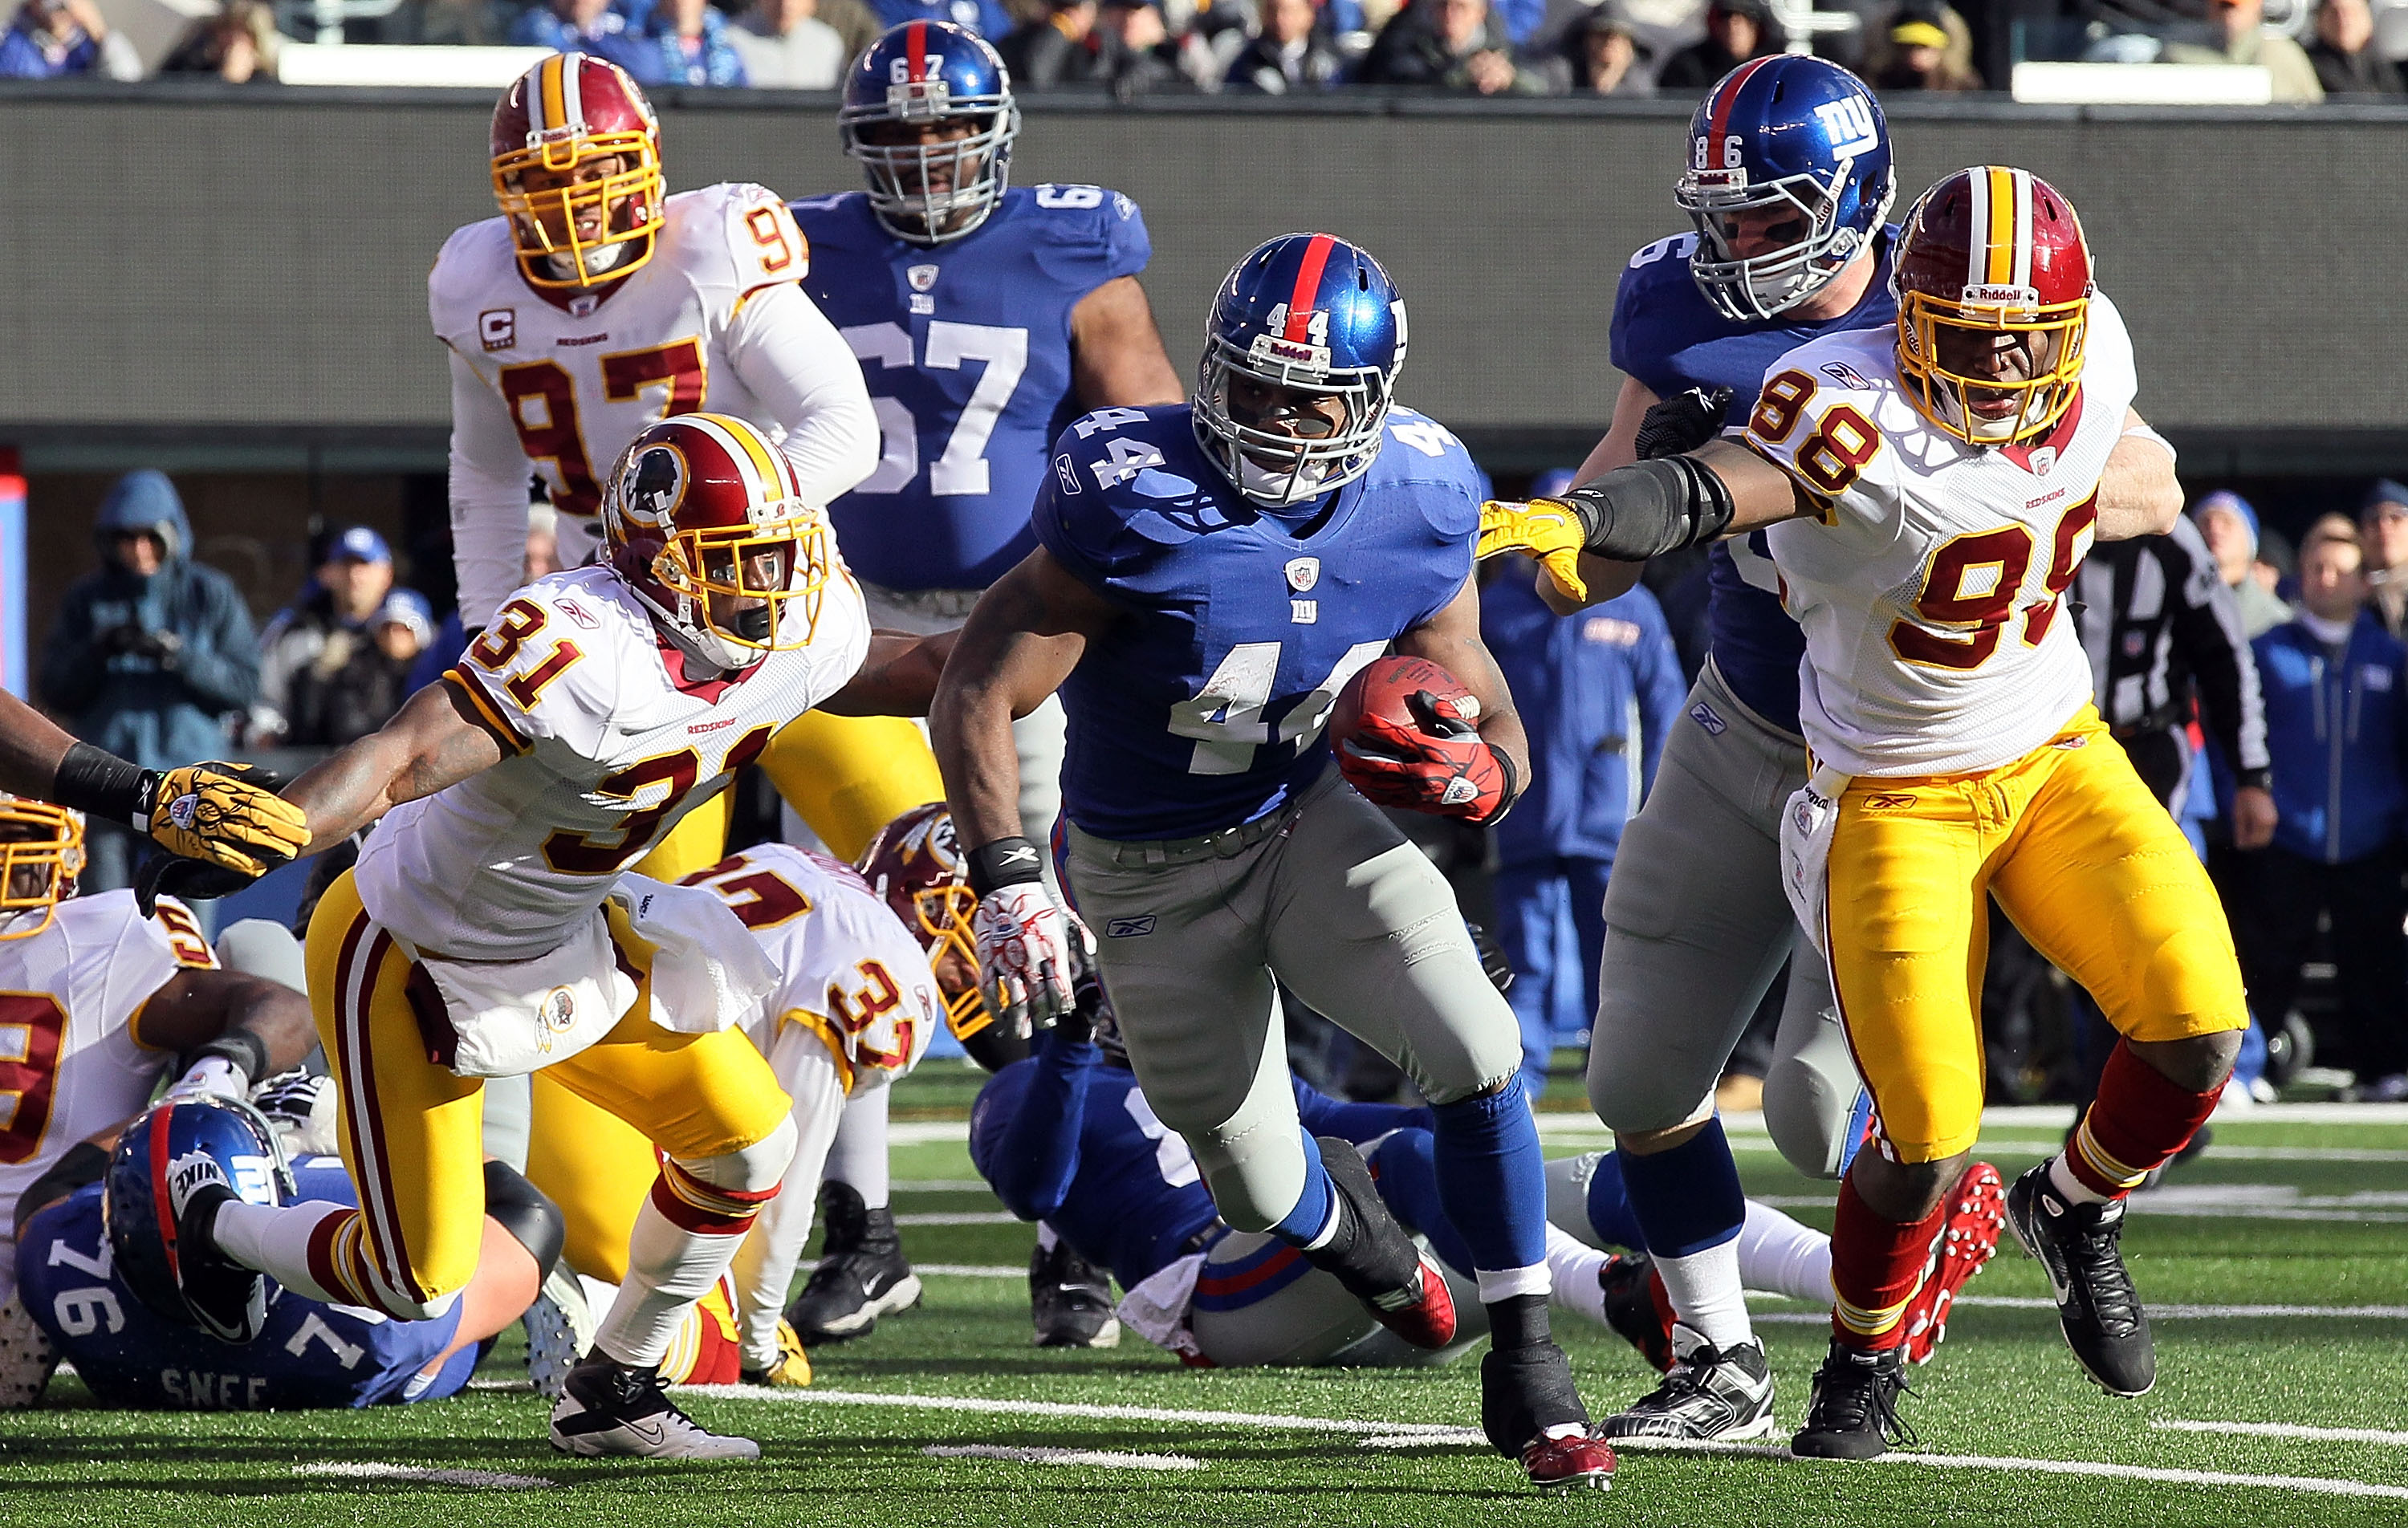 EAST RUTHERFORD, NJ - DECEMBER 05:  Ahmad Bradshaw #44 of the New York Giants runs the ball against the Washington Redskins on December 5, 2010 at the New Meadowlands Stadium in East Rutherford, New Jersey.  (Photo by Jim McIsaac/Getty Images)